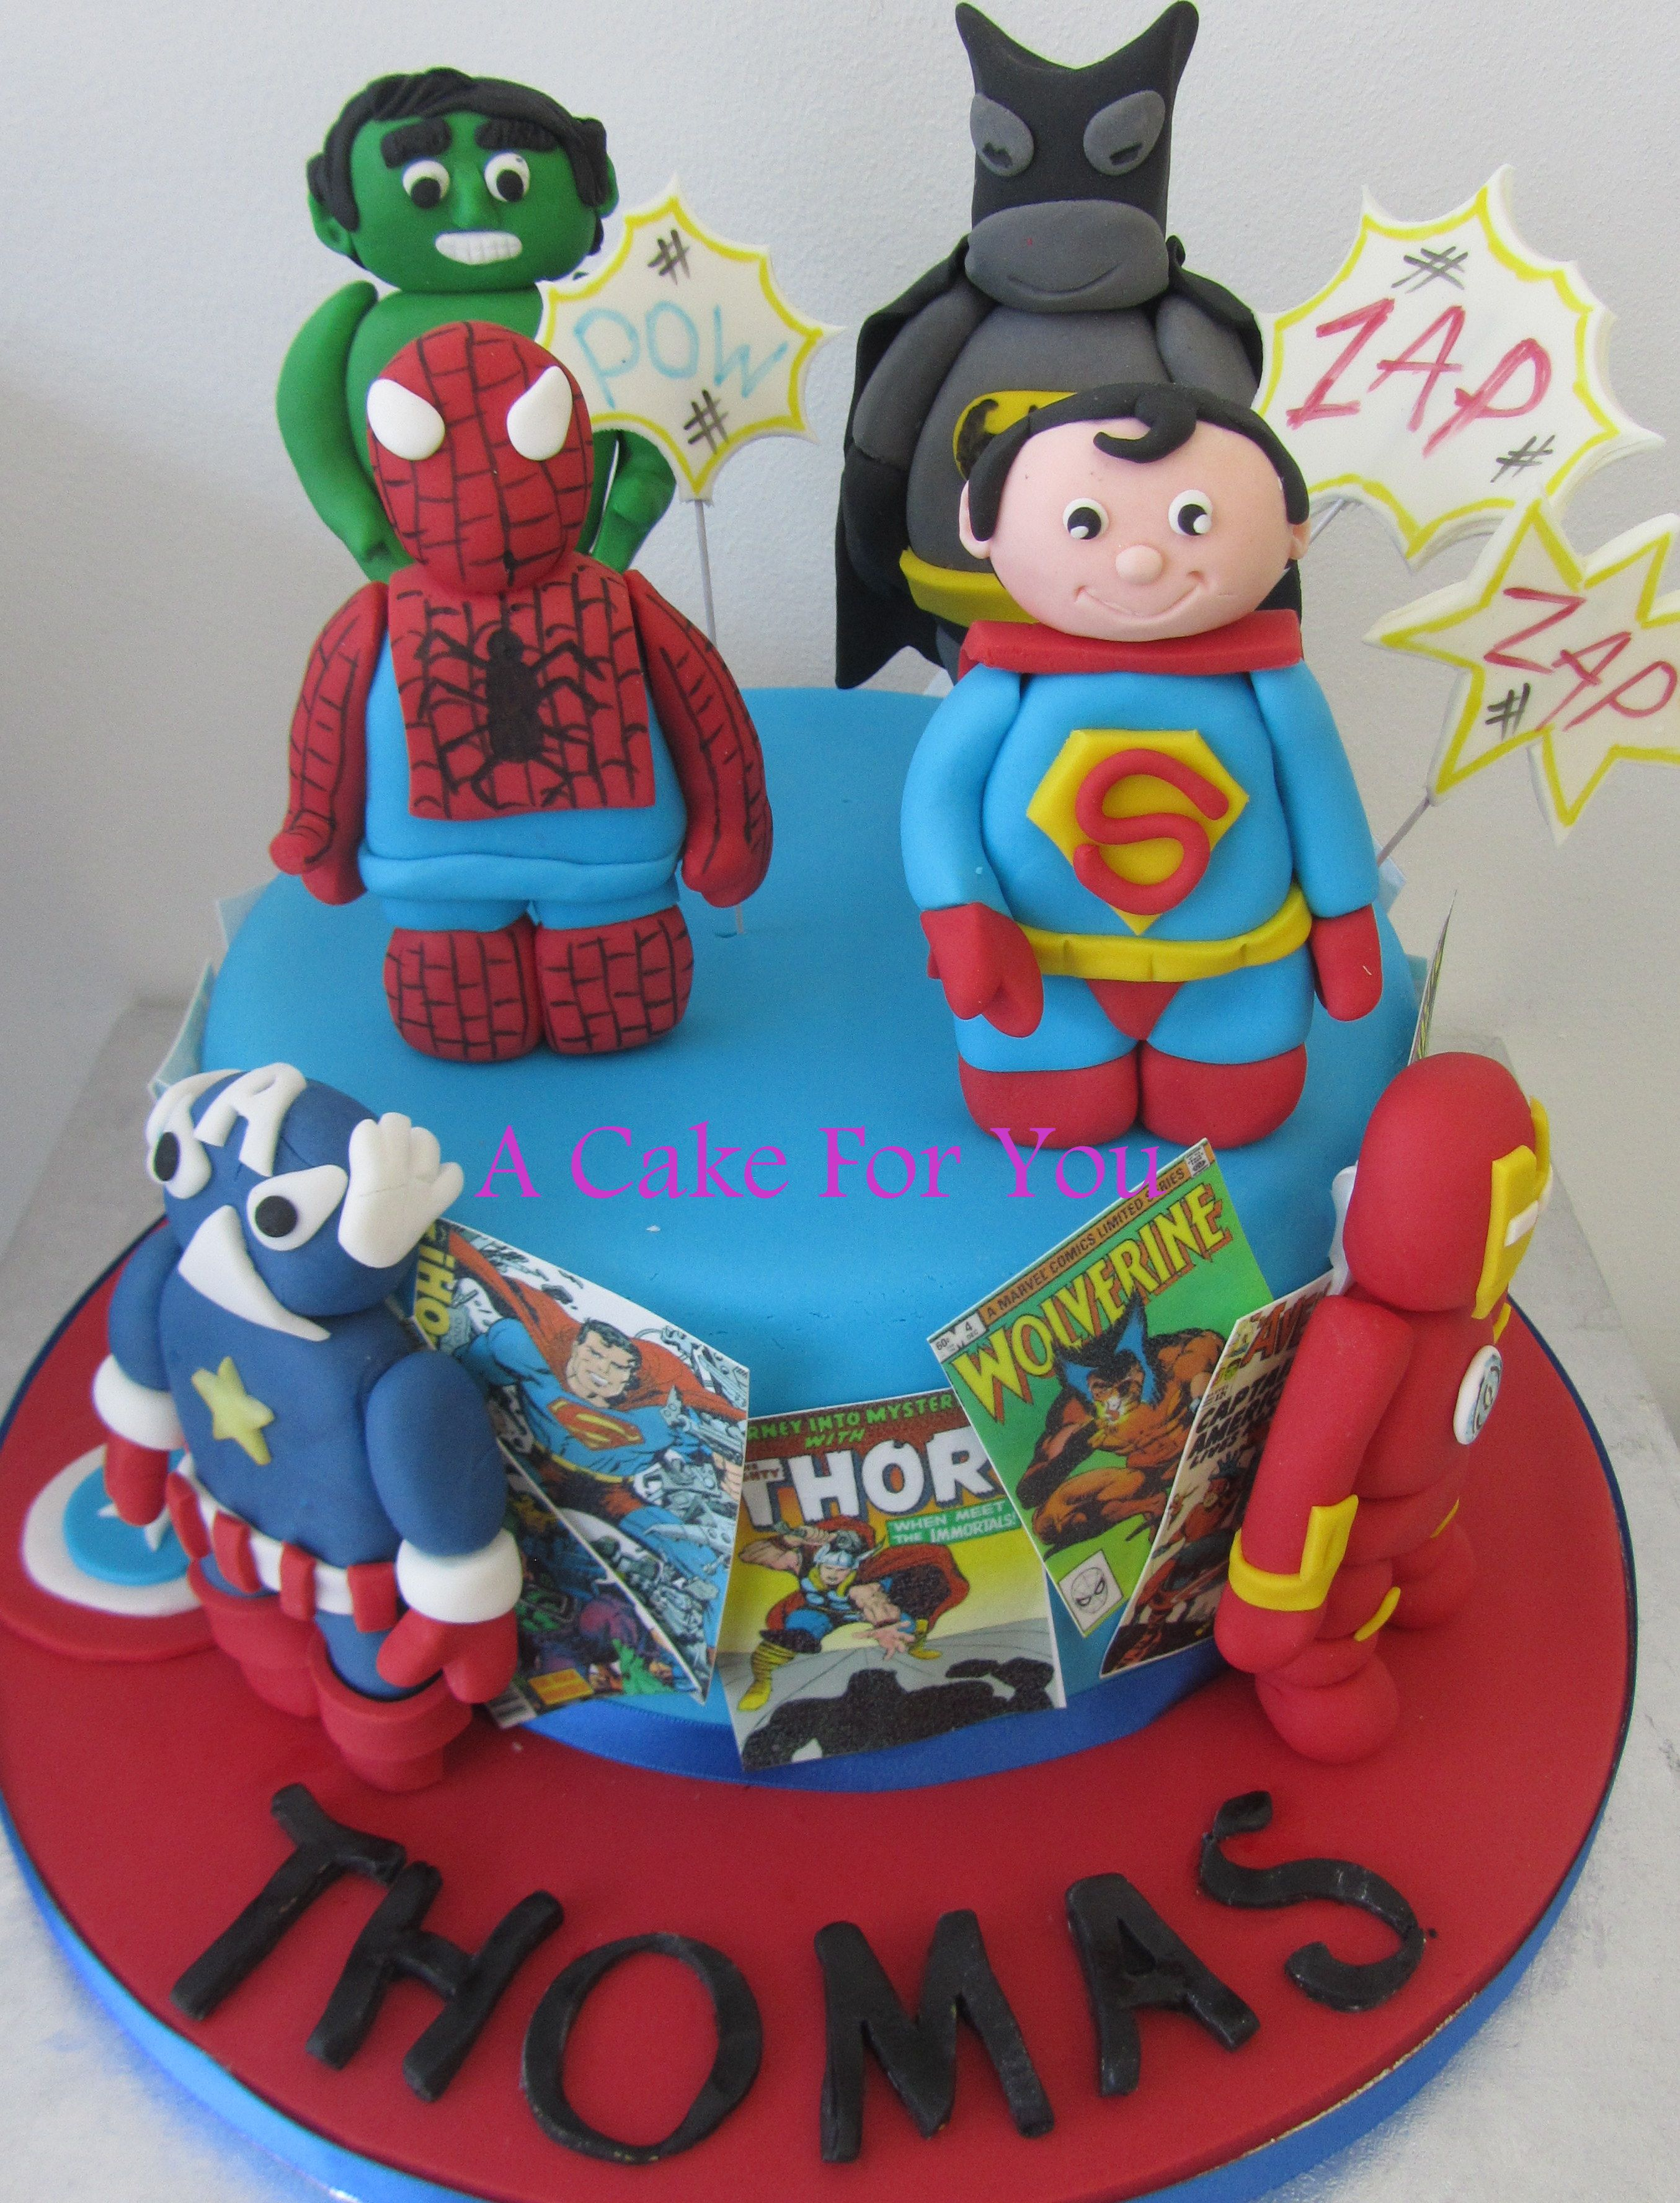 thomas marvel superhero cake follow us for more awesome cakes